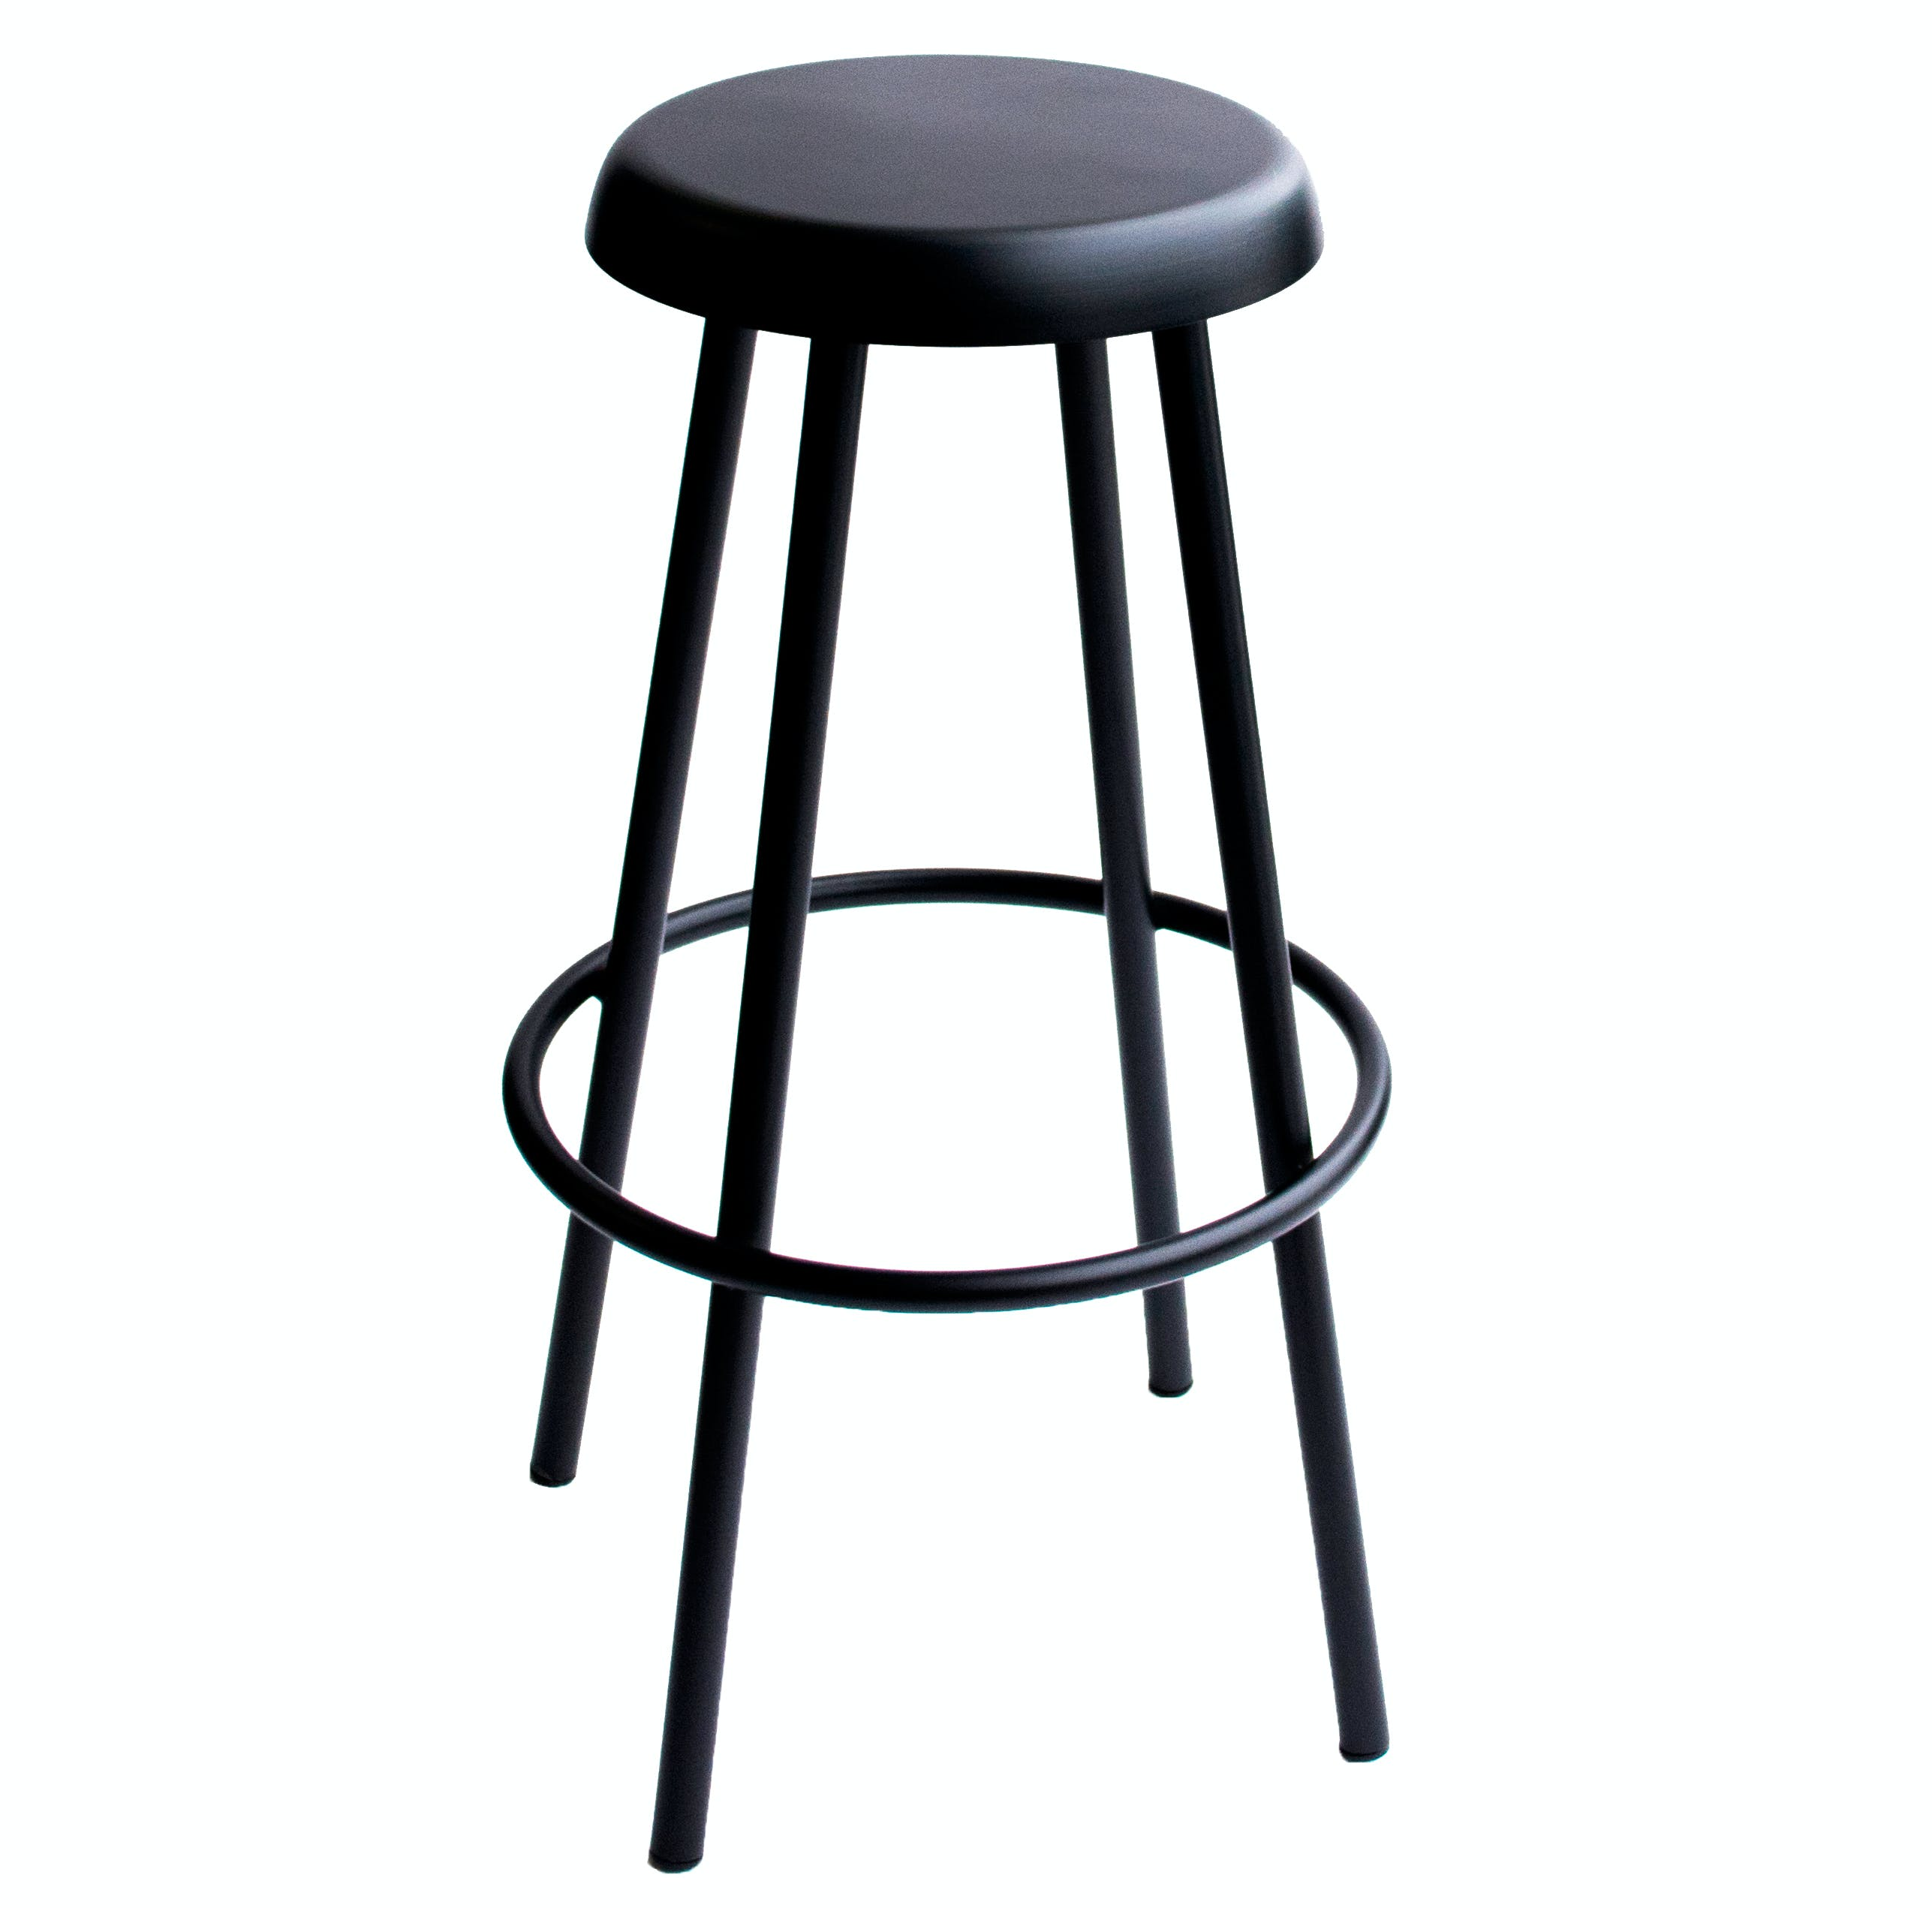 Division-12-shop-bar-stool-black-haute-living-thumbnail